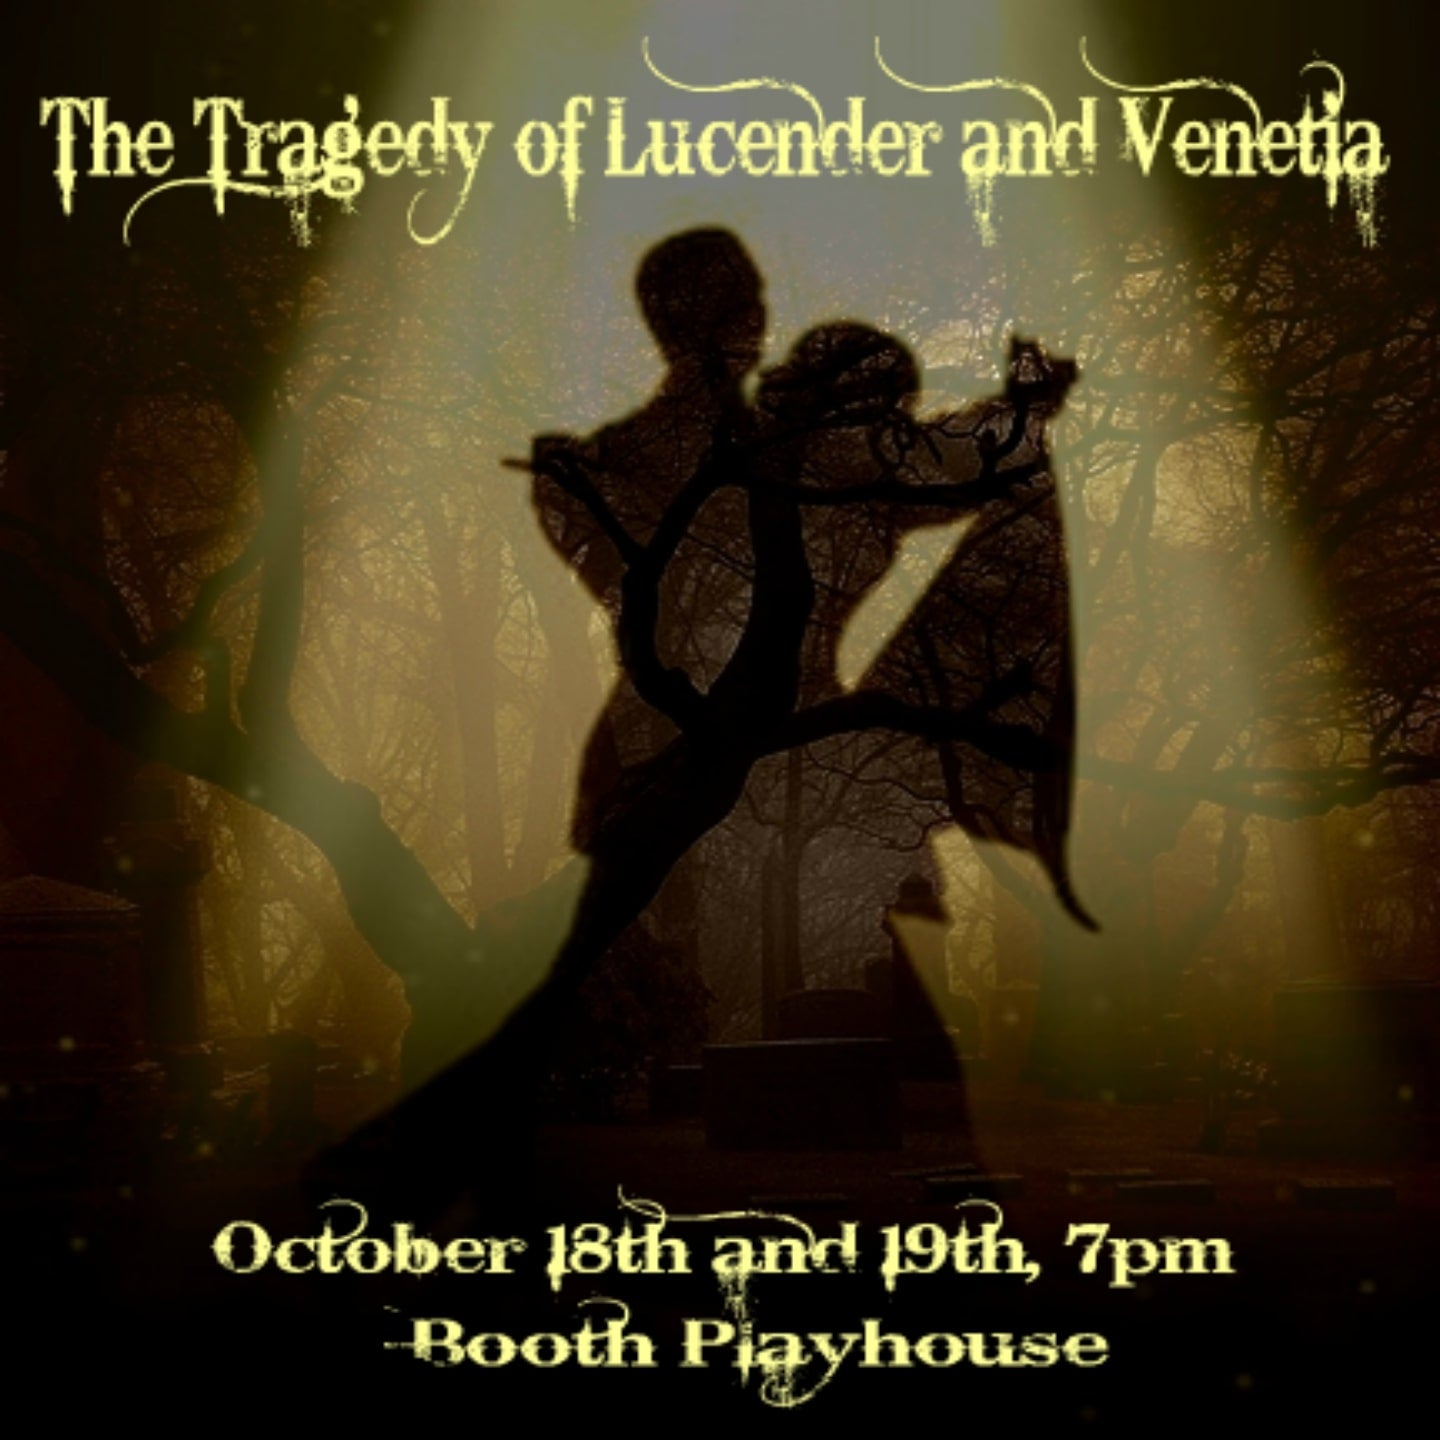 The Tragedy of Lucender and Venetia